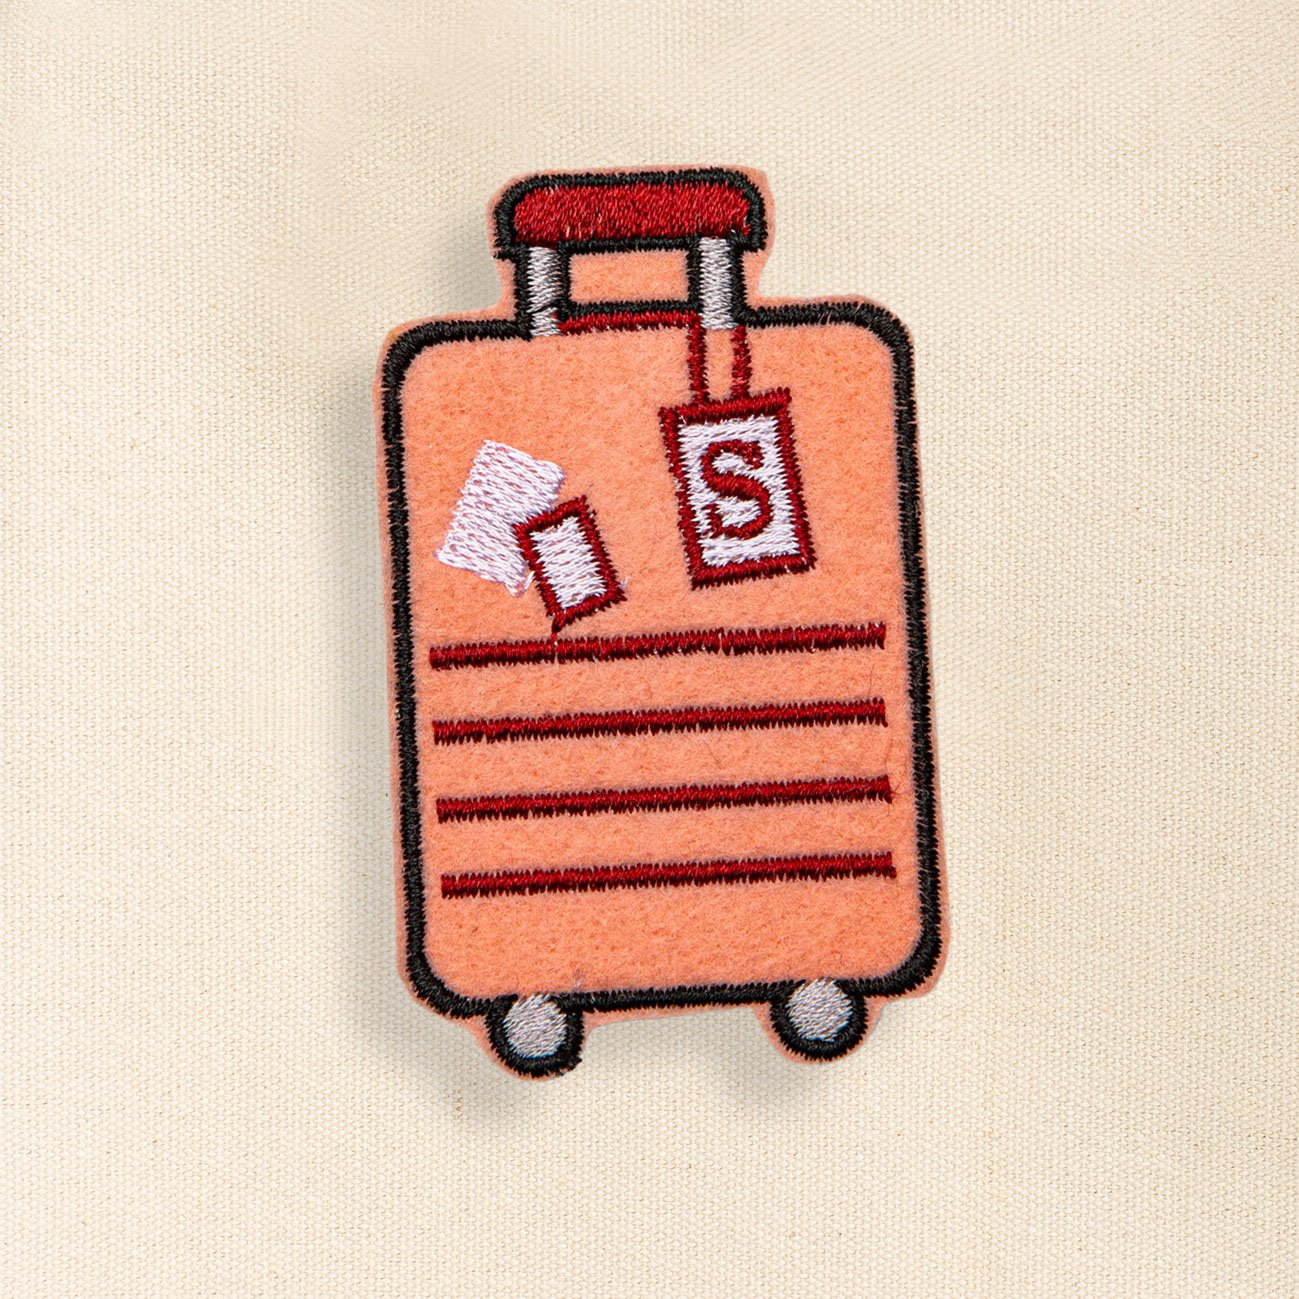 Travel Patches